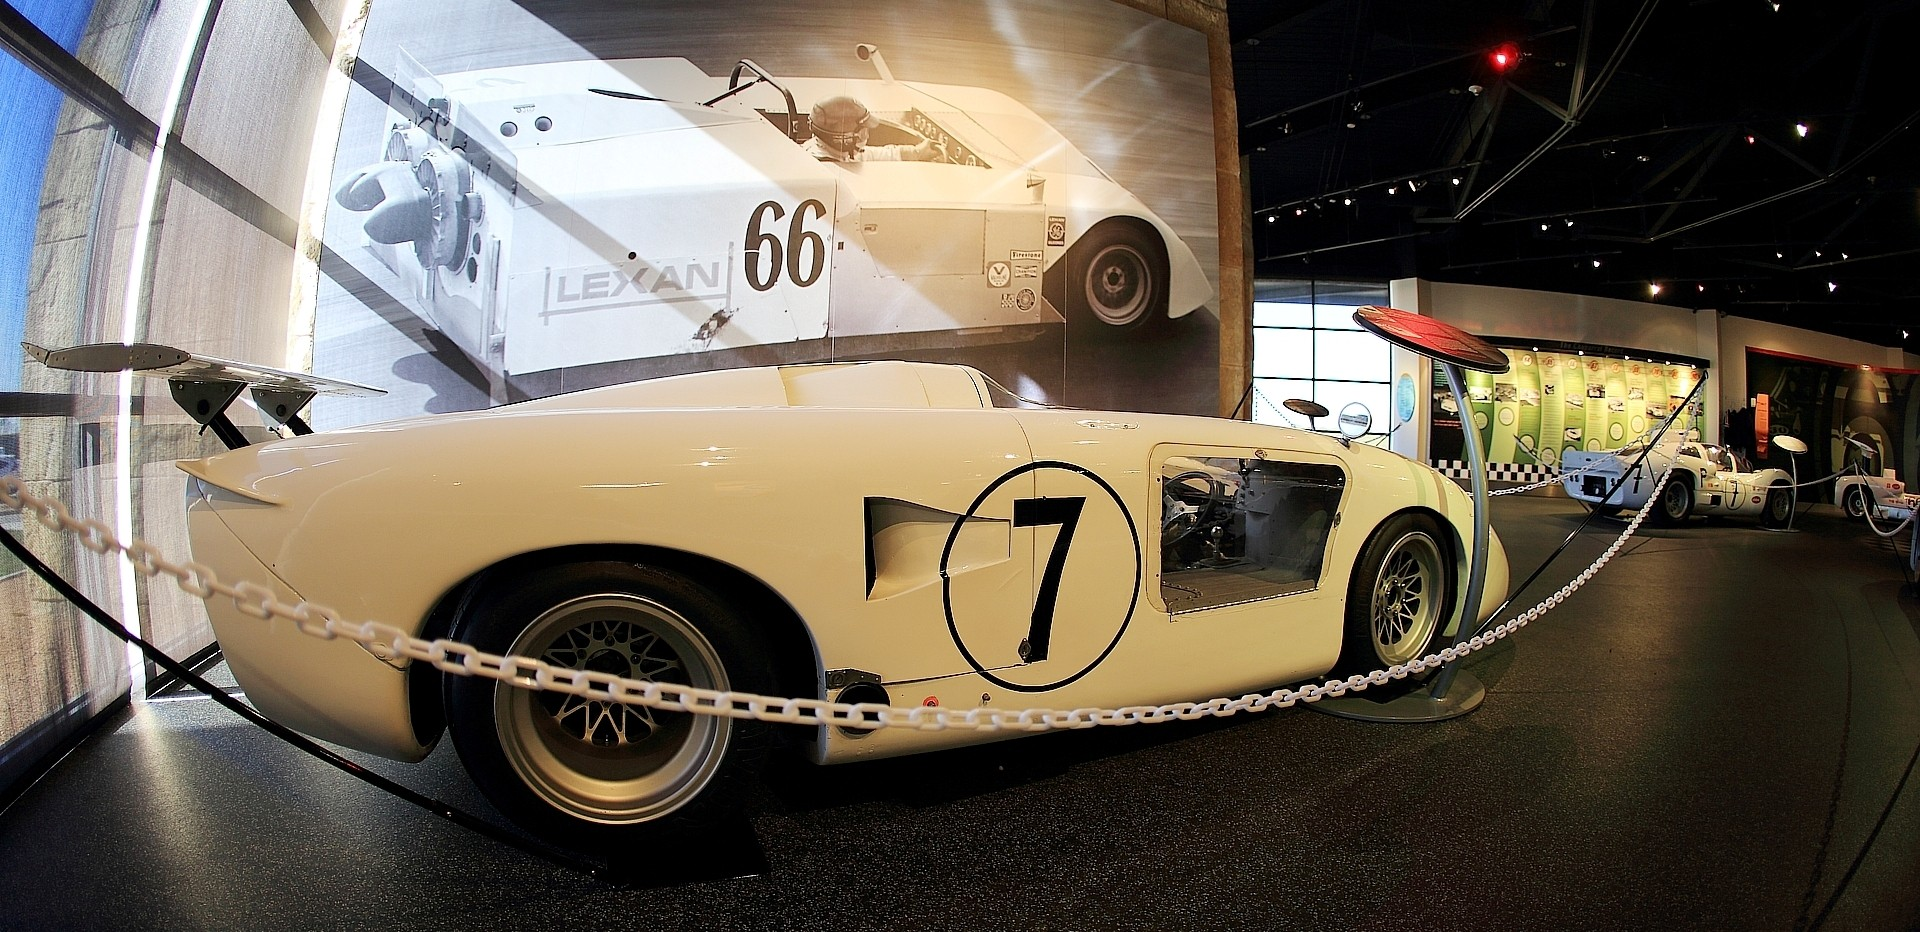 see the authentic chaparral h and j racecars at the petroleum texas see the authentic chaparral 2h and 2j racecars at the petroleum museum in midland texas